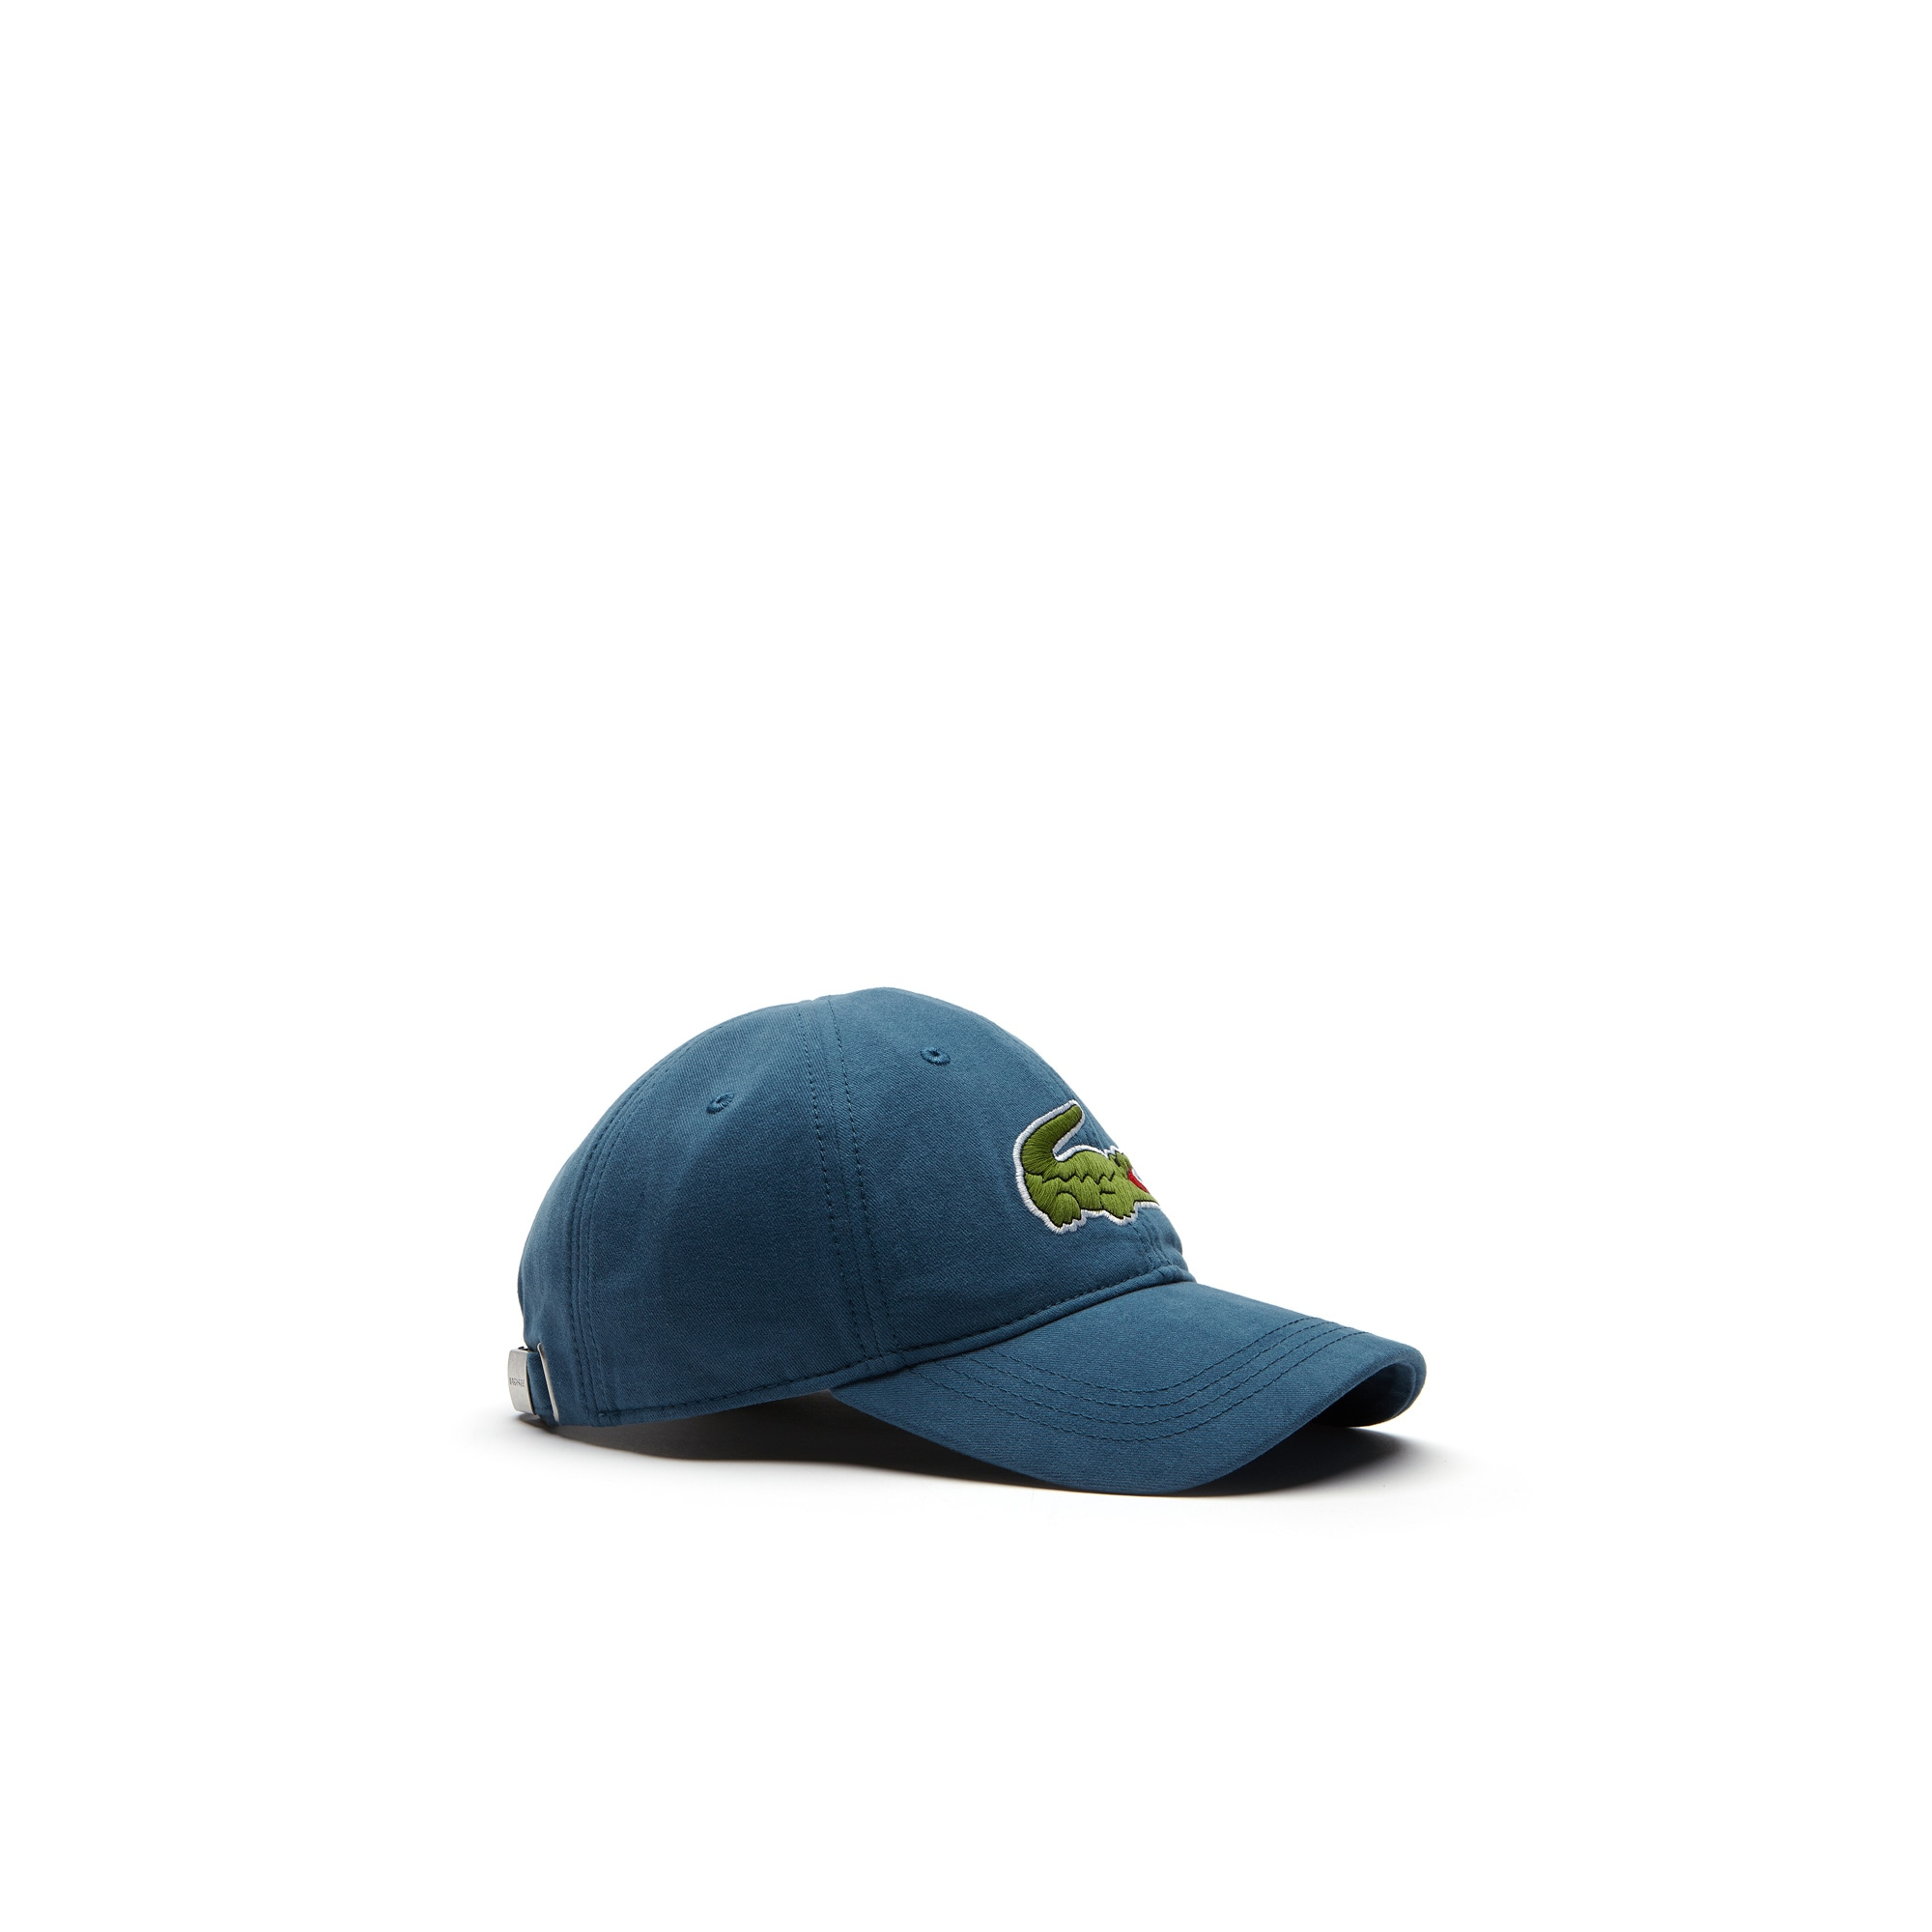 MEN'S BIG CROC GABARDINE CAP